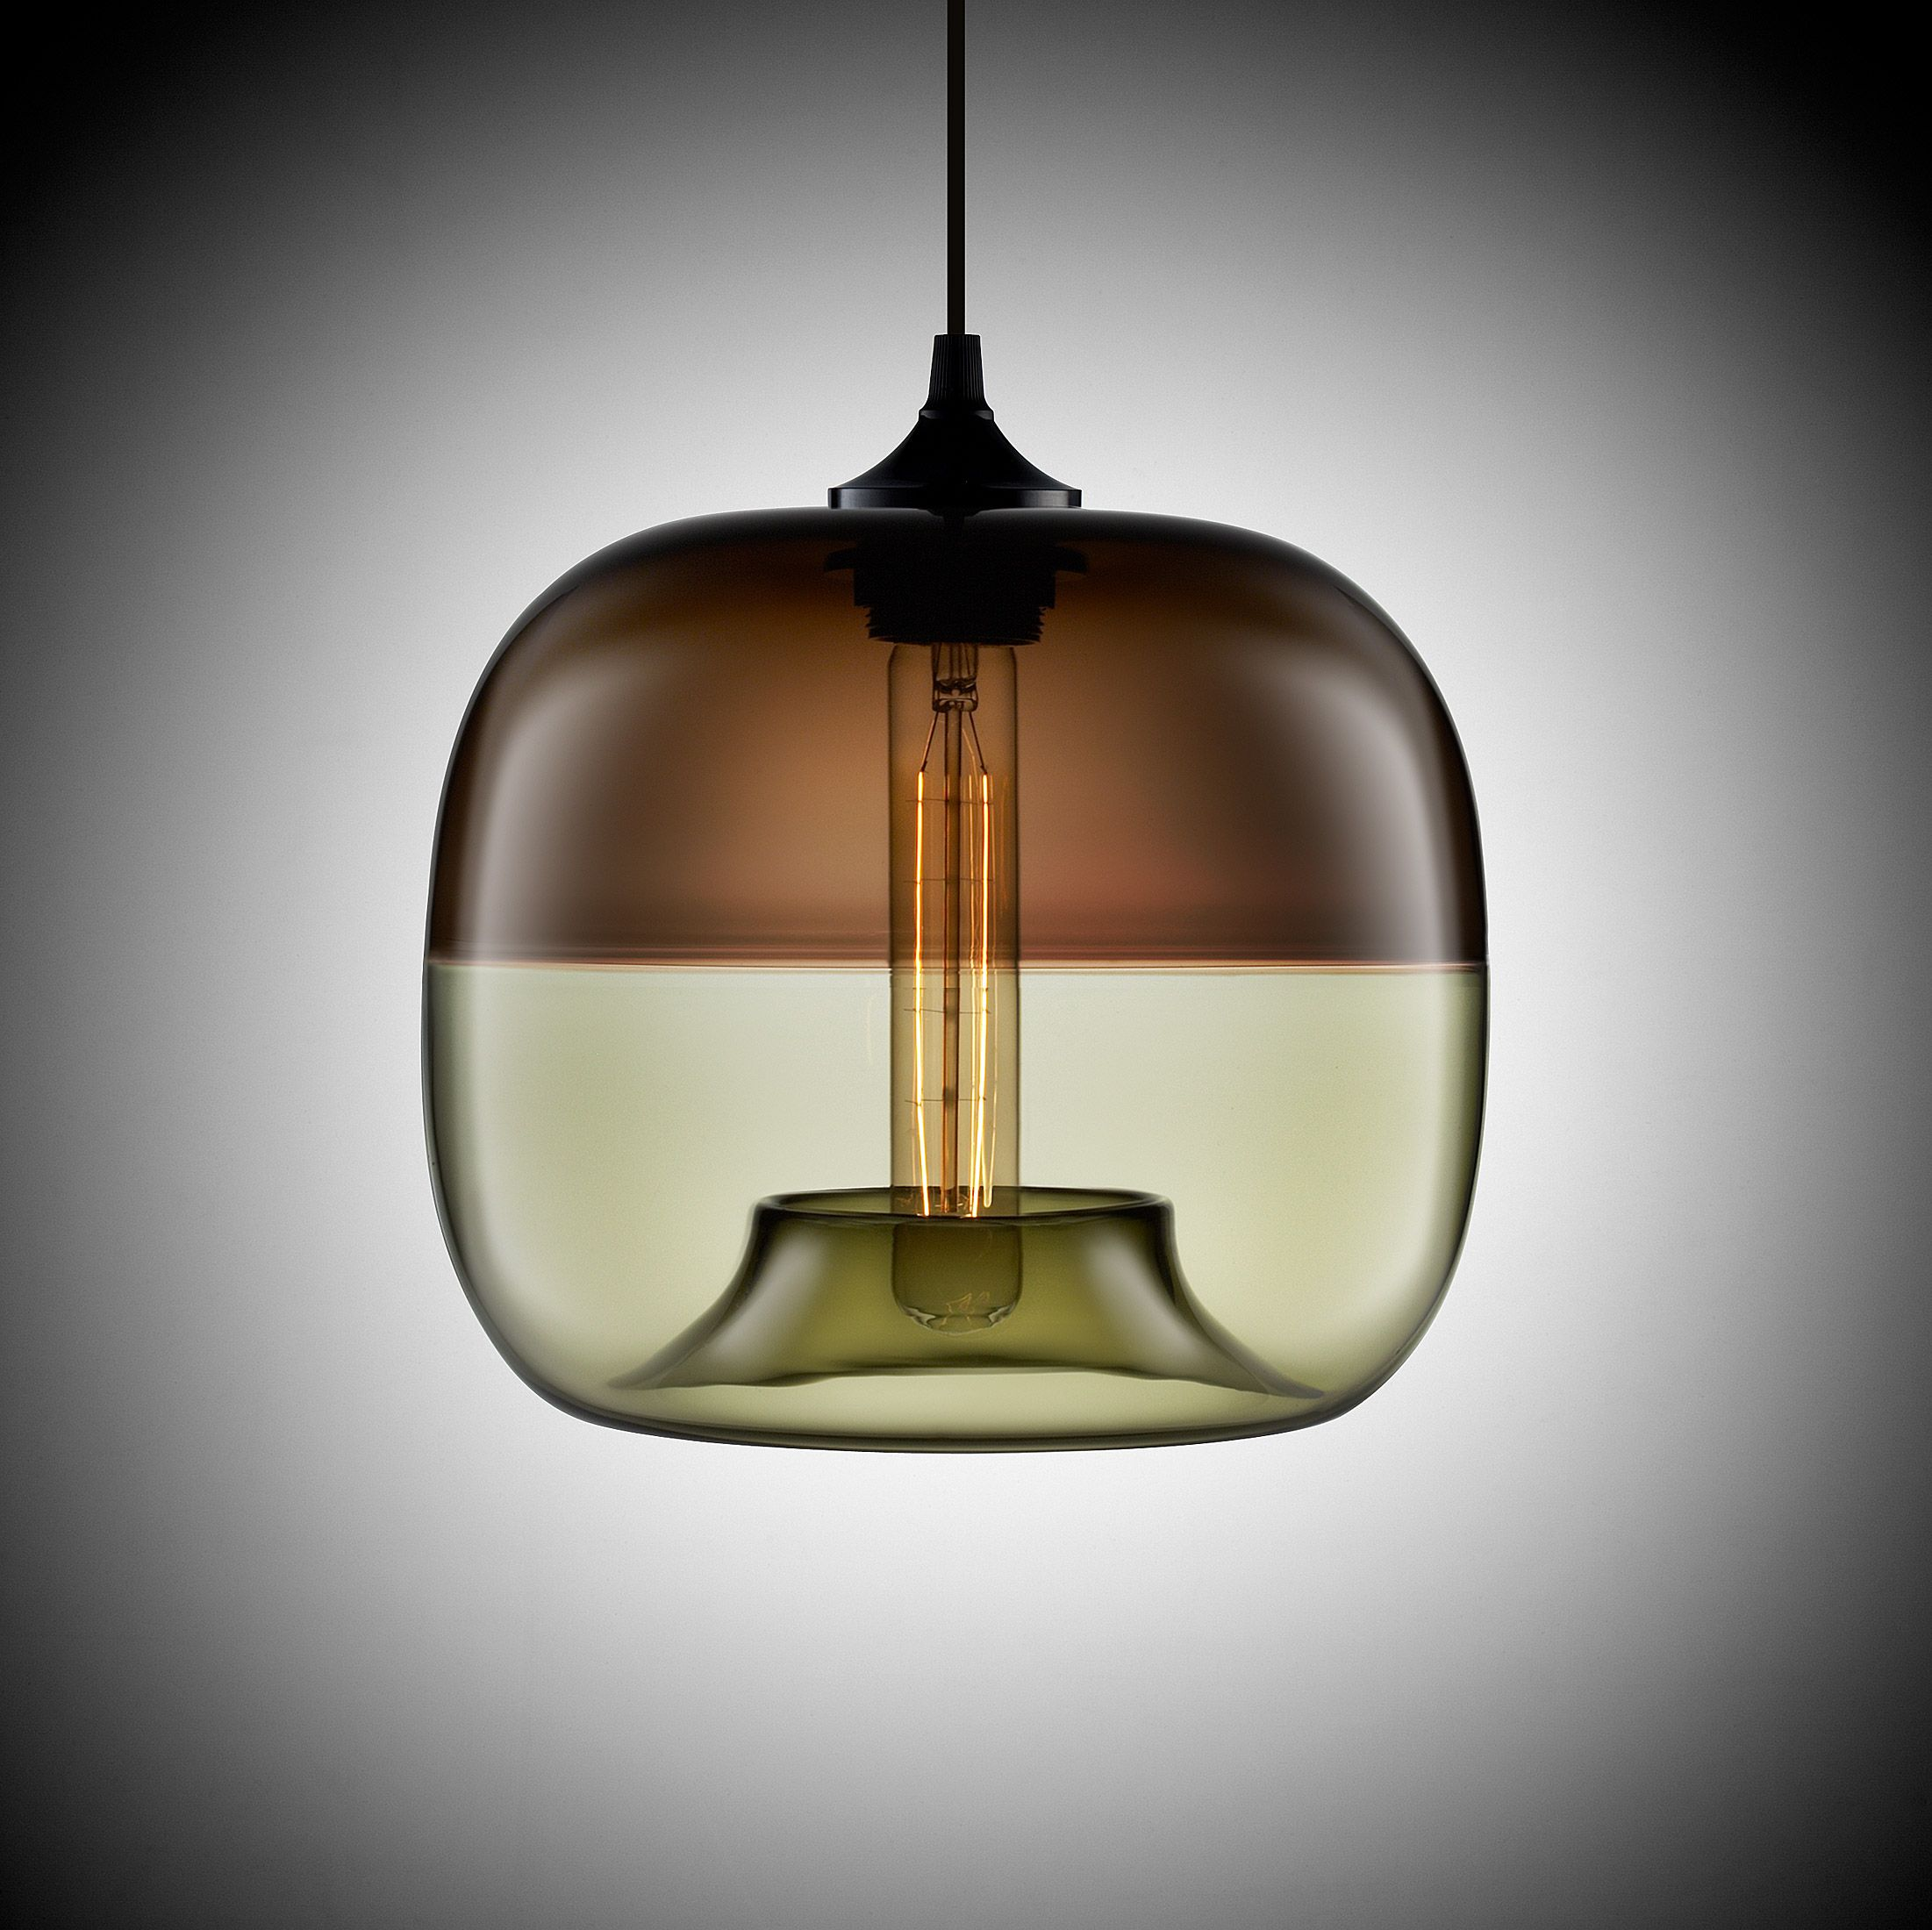 modern lighting concepts. Two Pieces Of Glass Fused To Produce The Encalmo-Stamen Modern Pendant Light. Lighting Concepts N